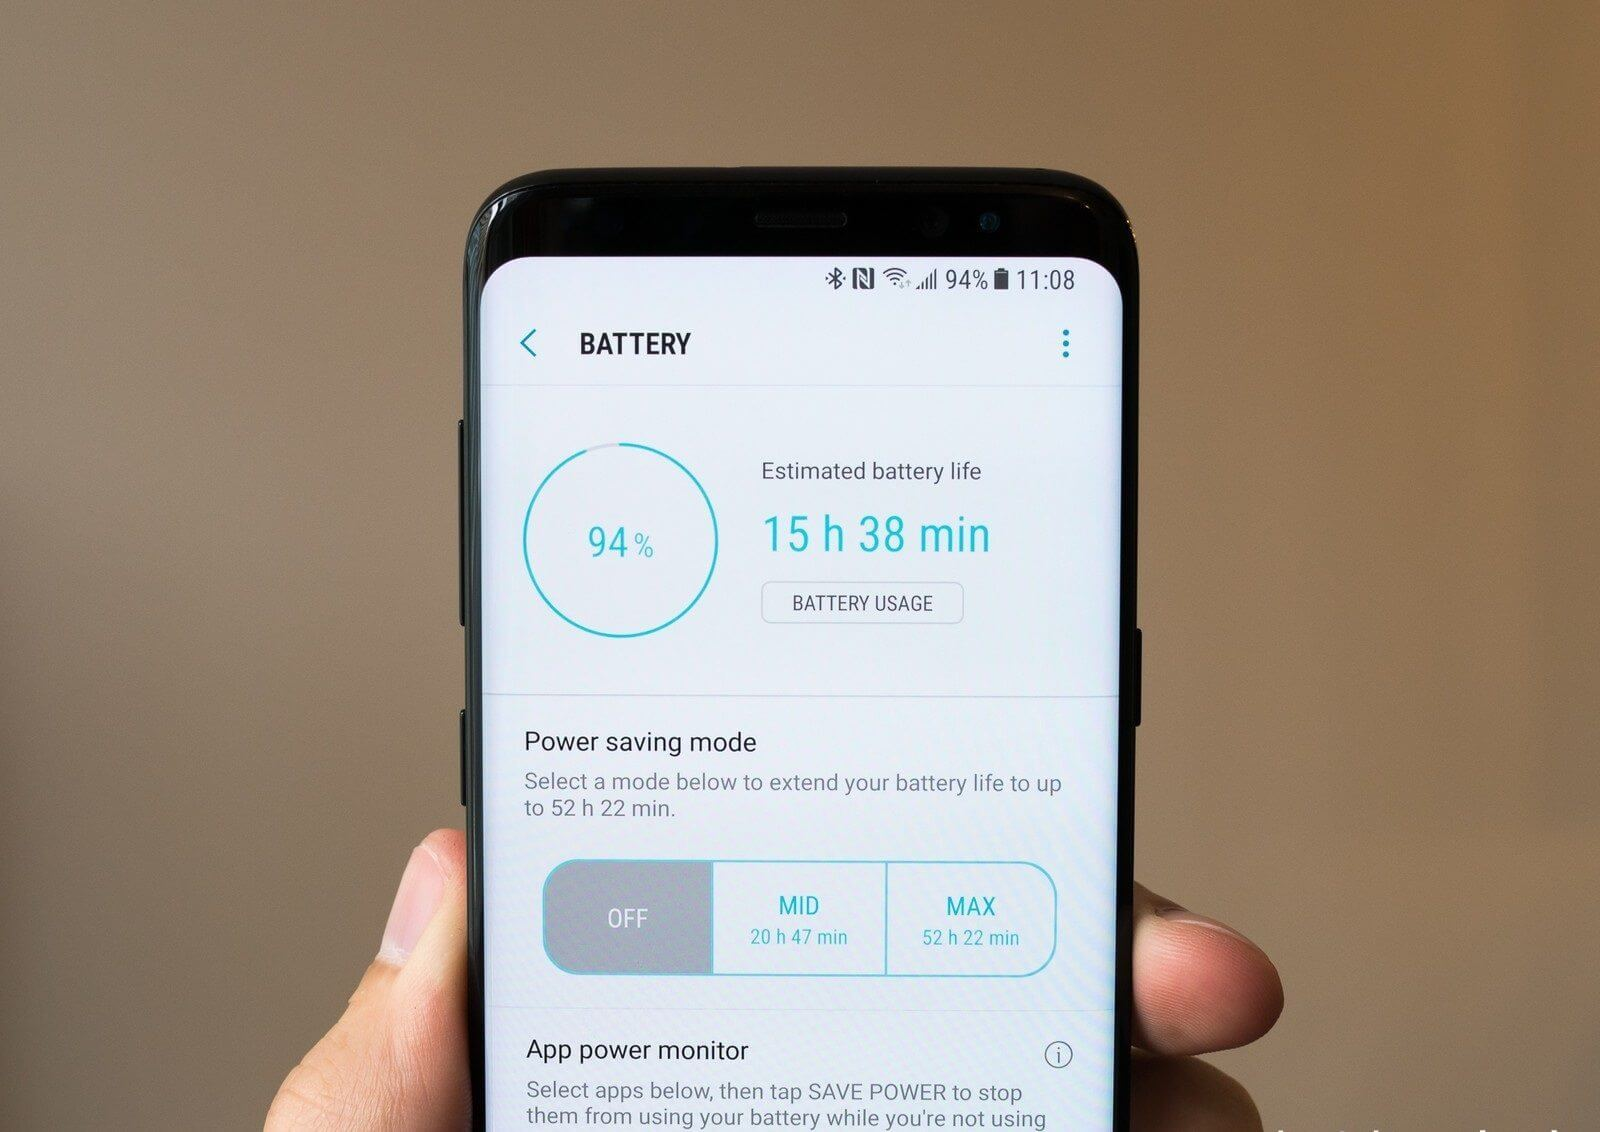 BATTERY GALAXY S8 - 7 motivos para trocar o iPhone 8 ou Google Pixel 2 pelo Galaxy Note 8